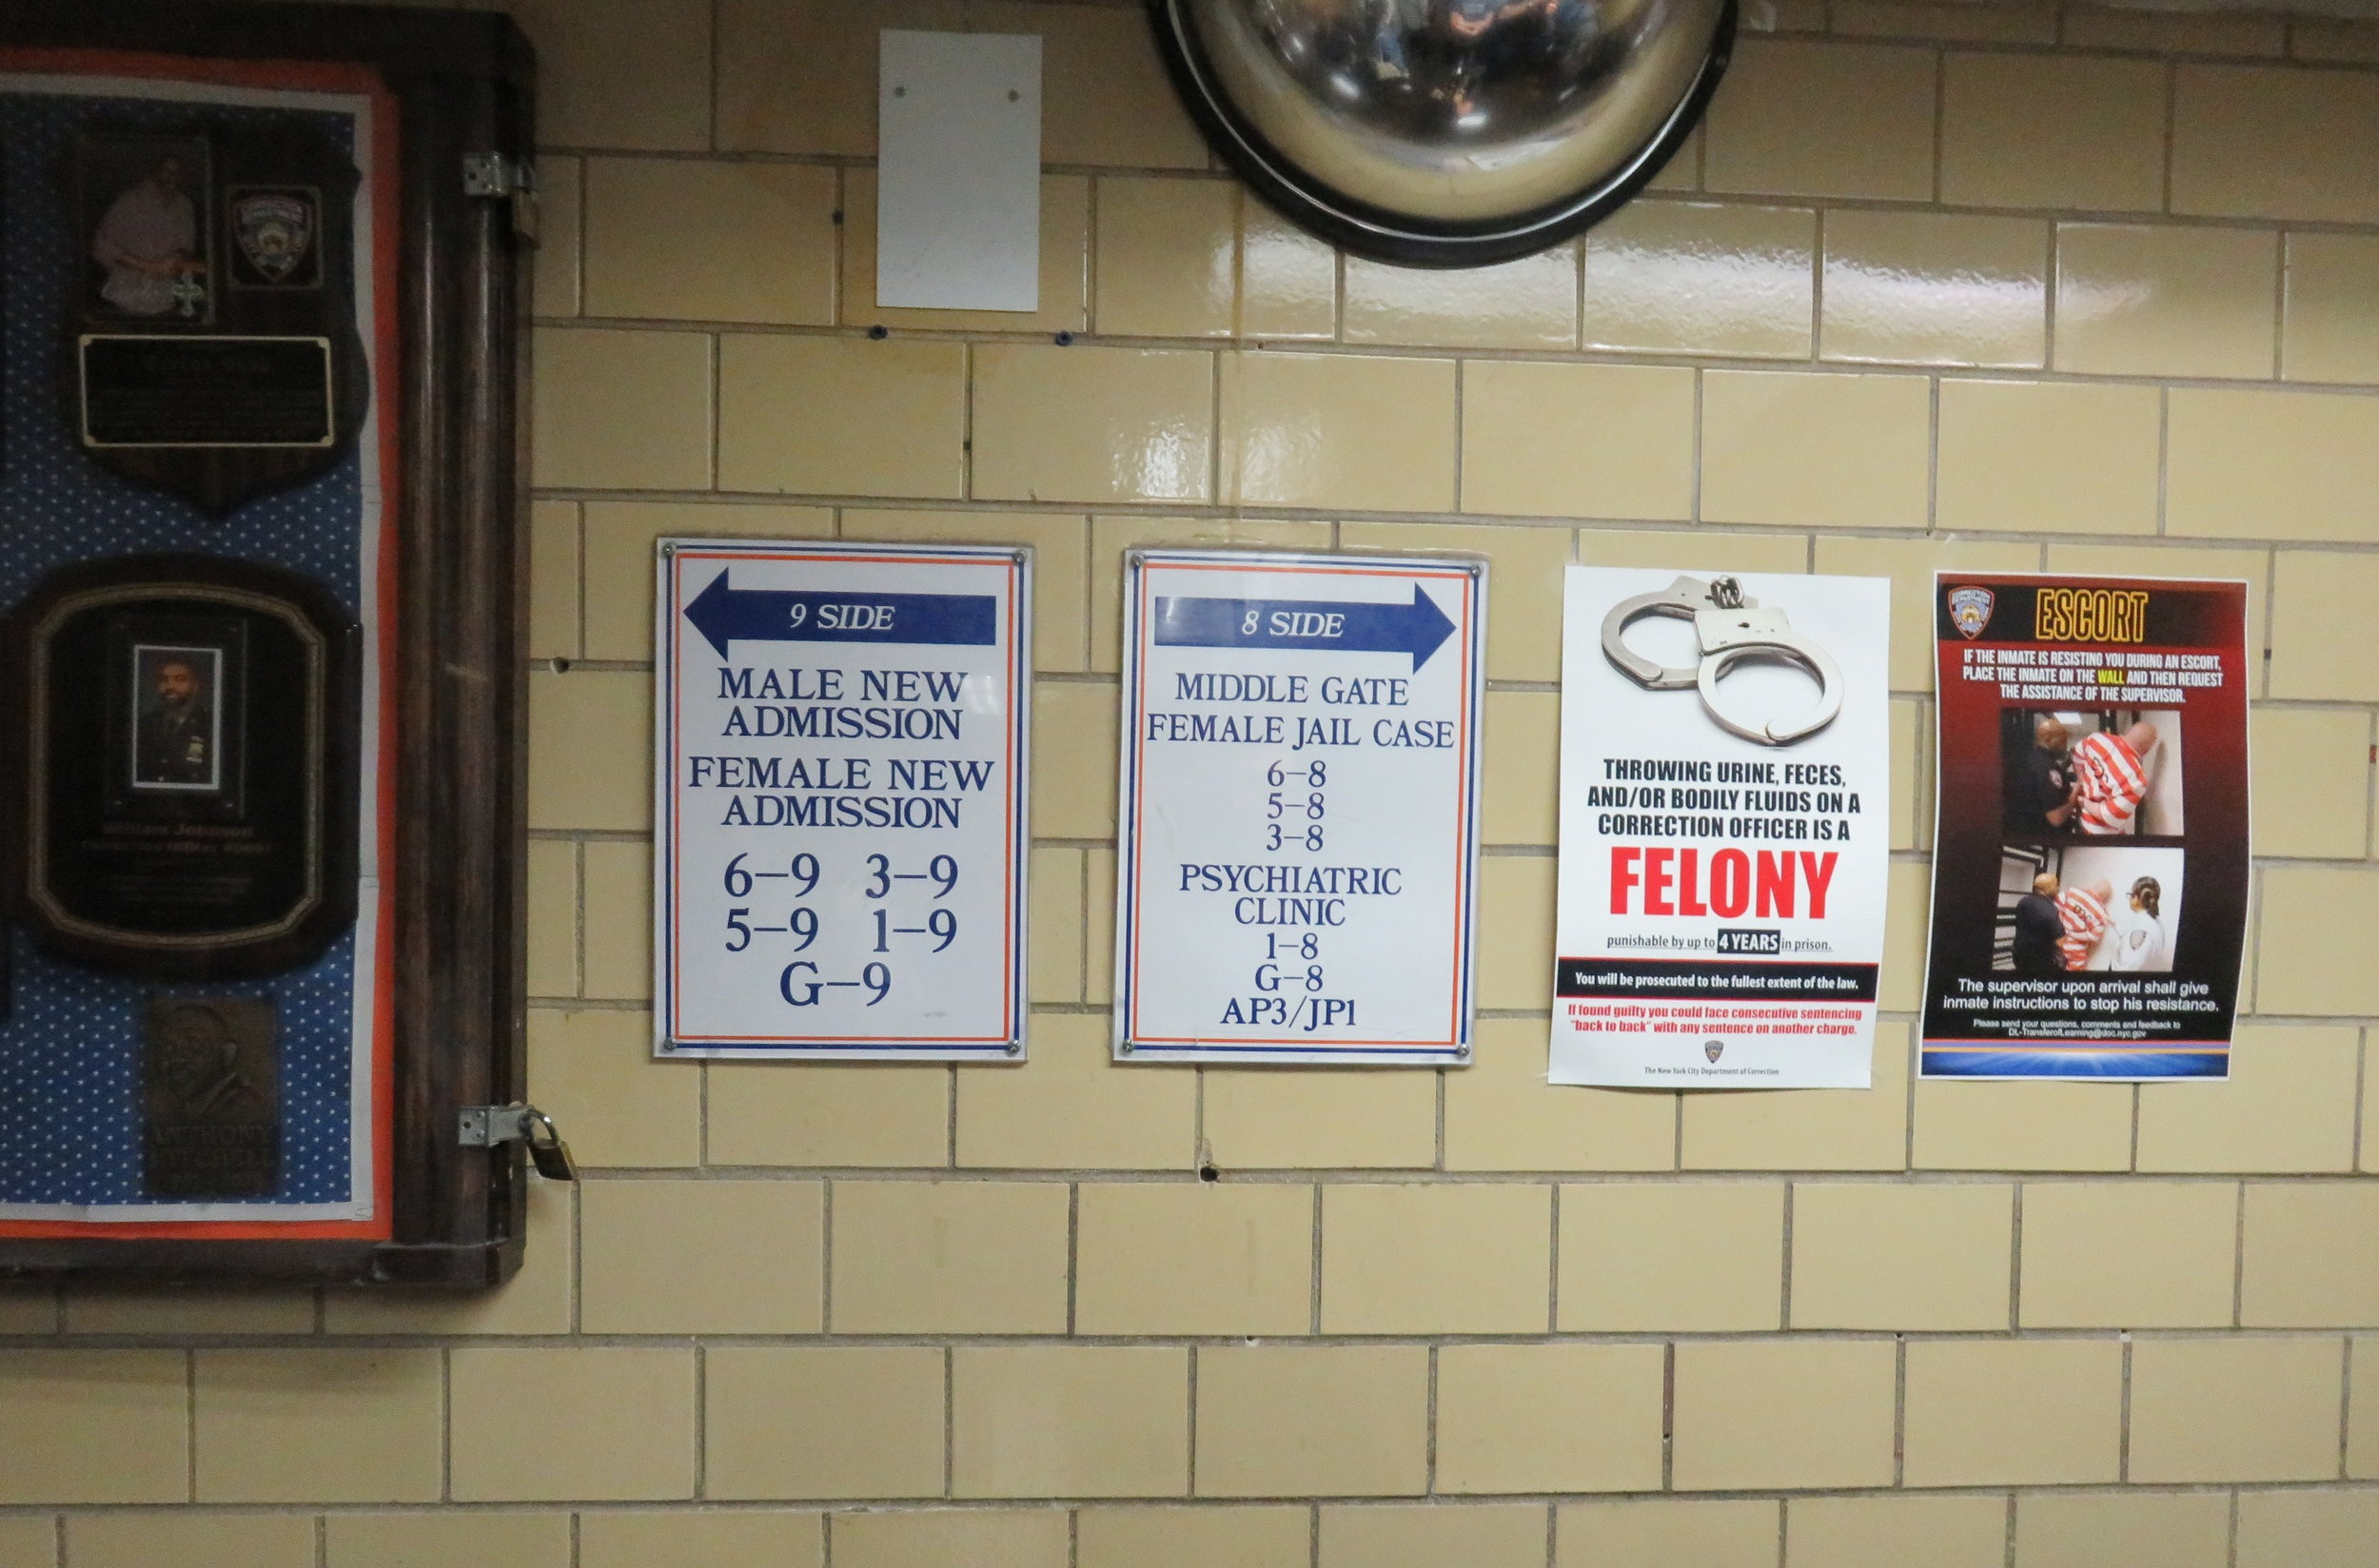 Signs warn detainees not to assault correction staff.